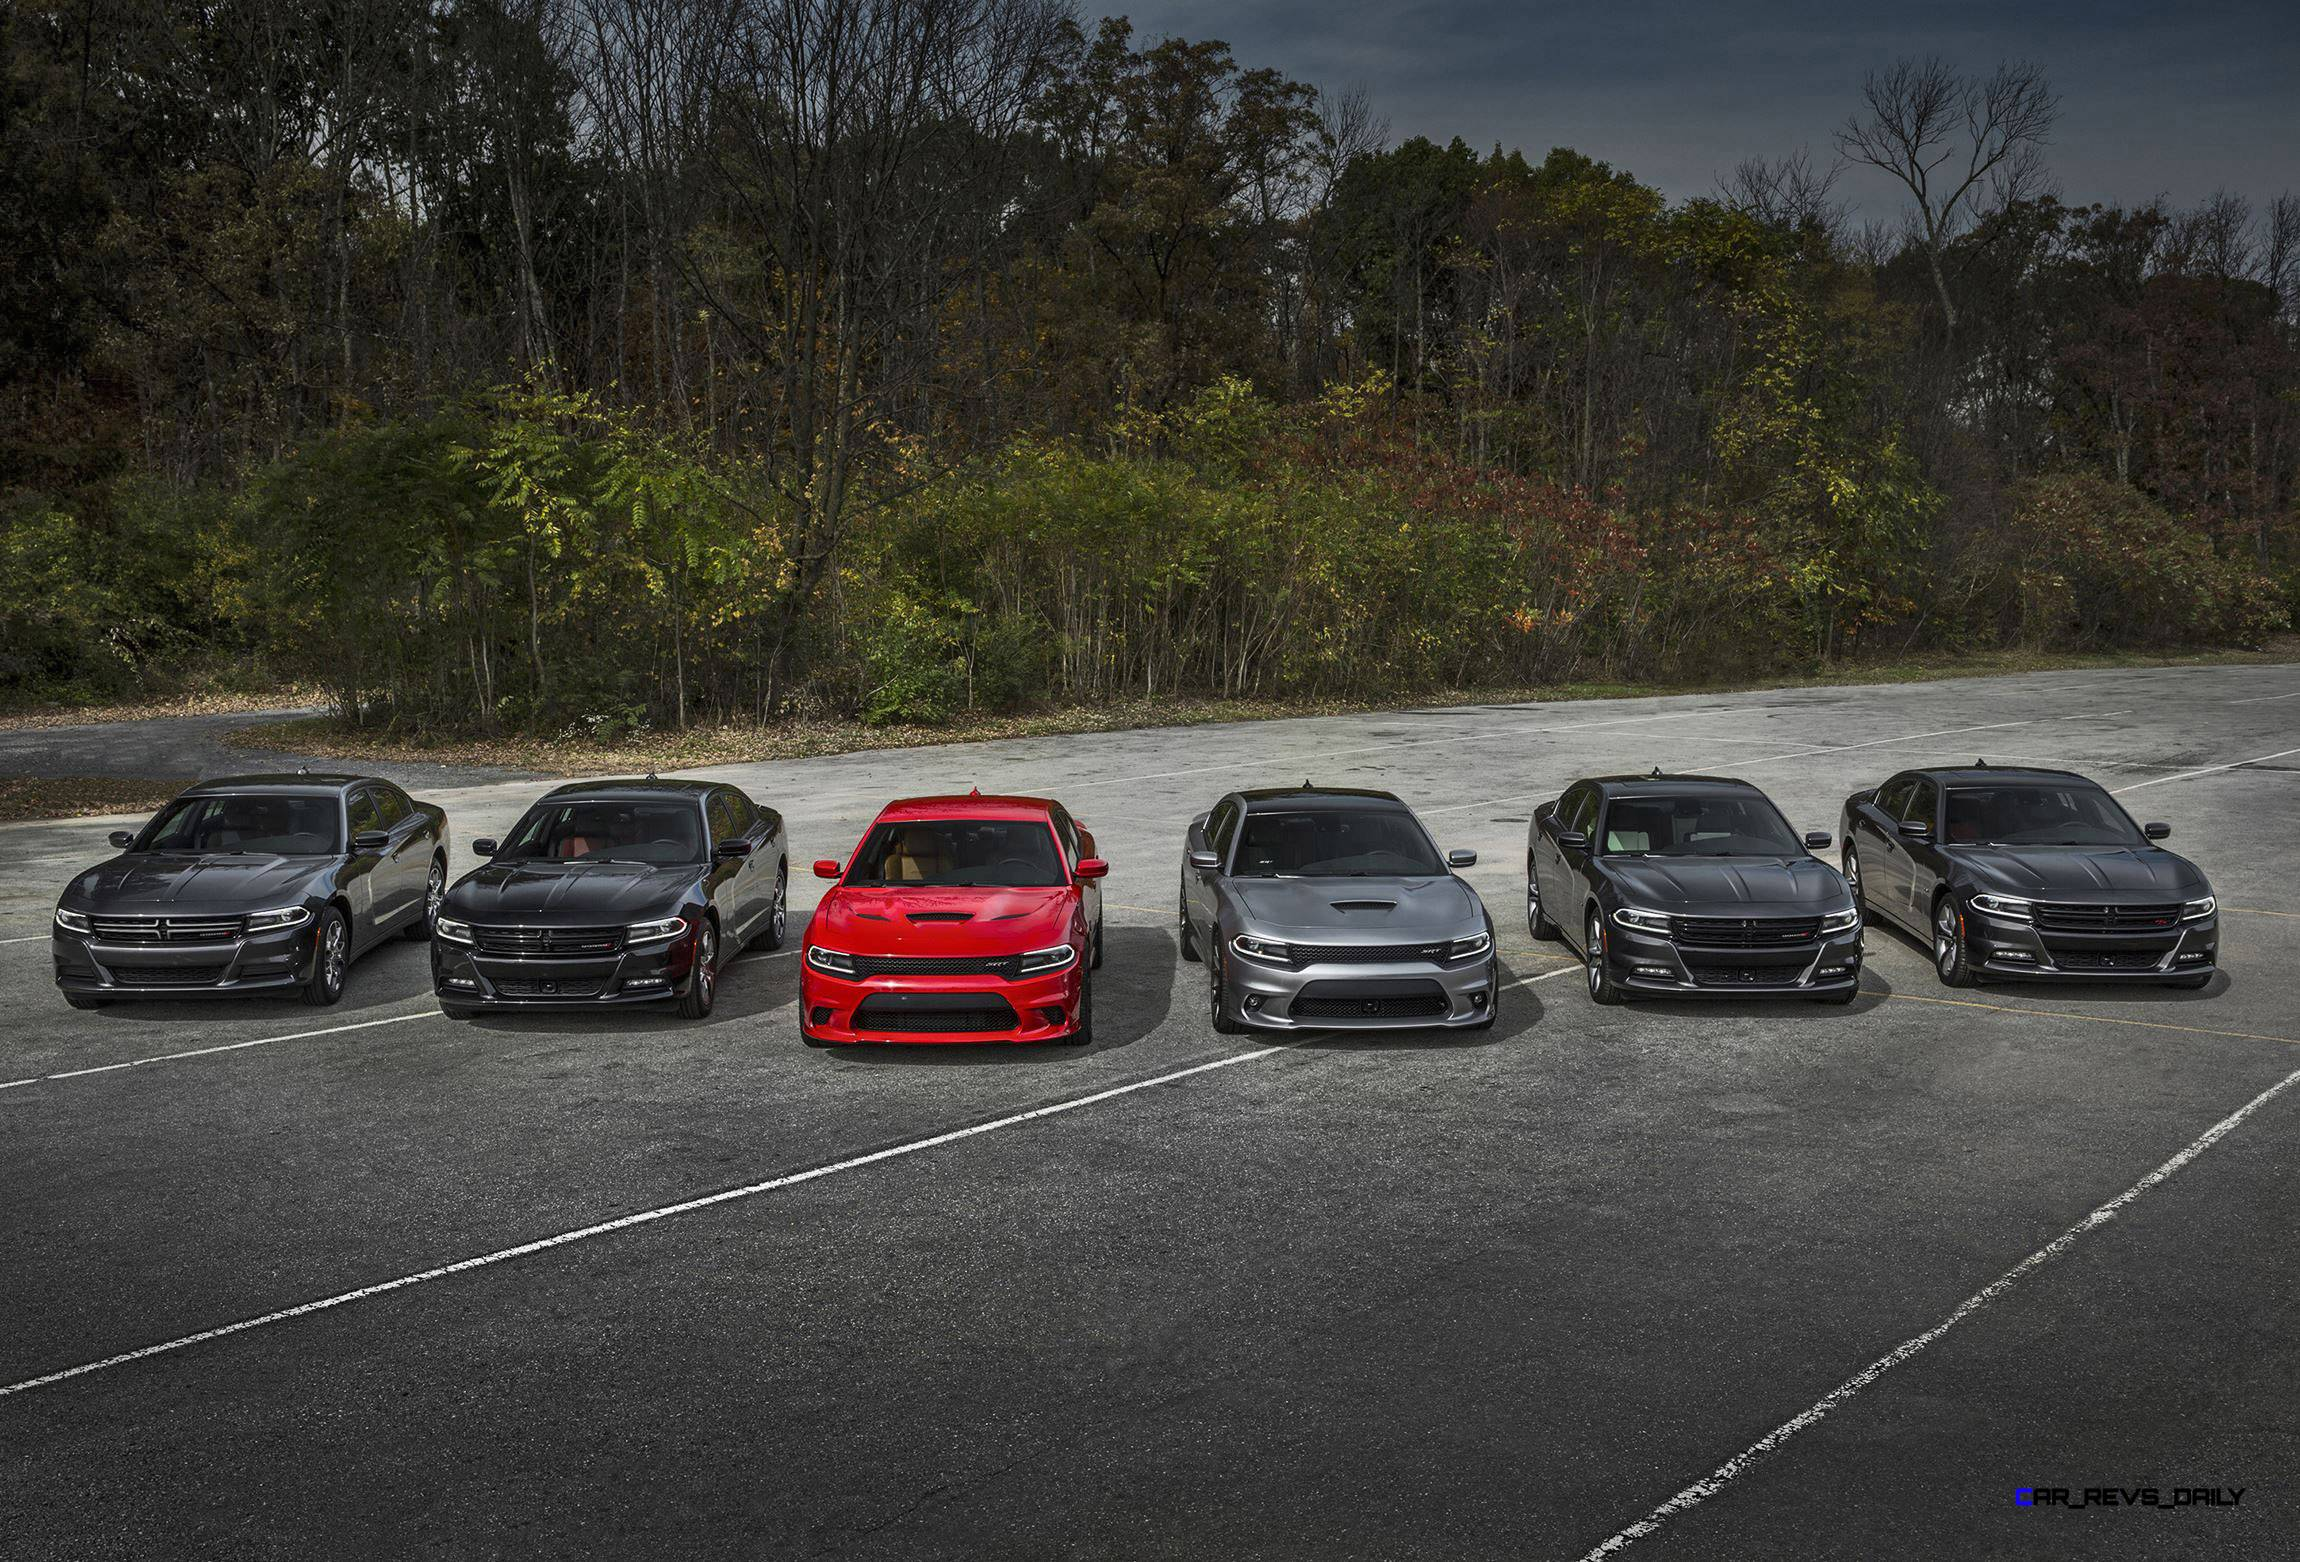 2016 Dodge Charger Model Lineup From Left To Right